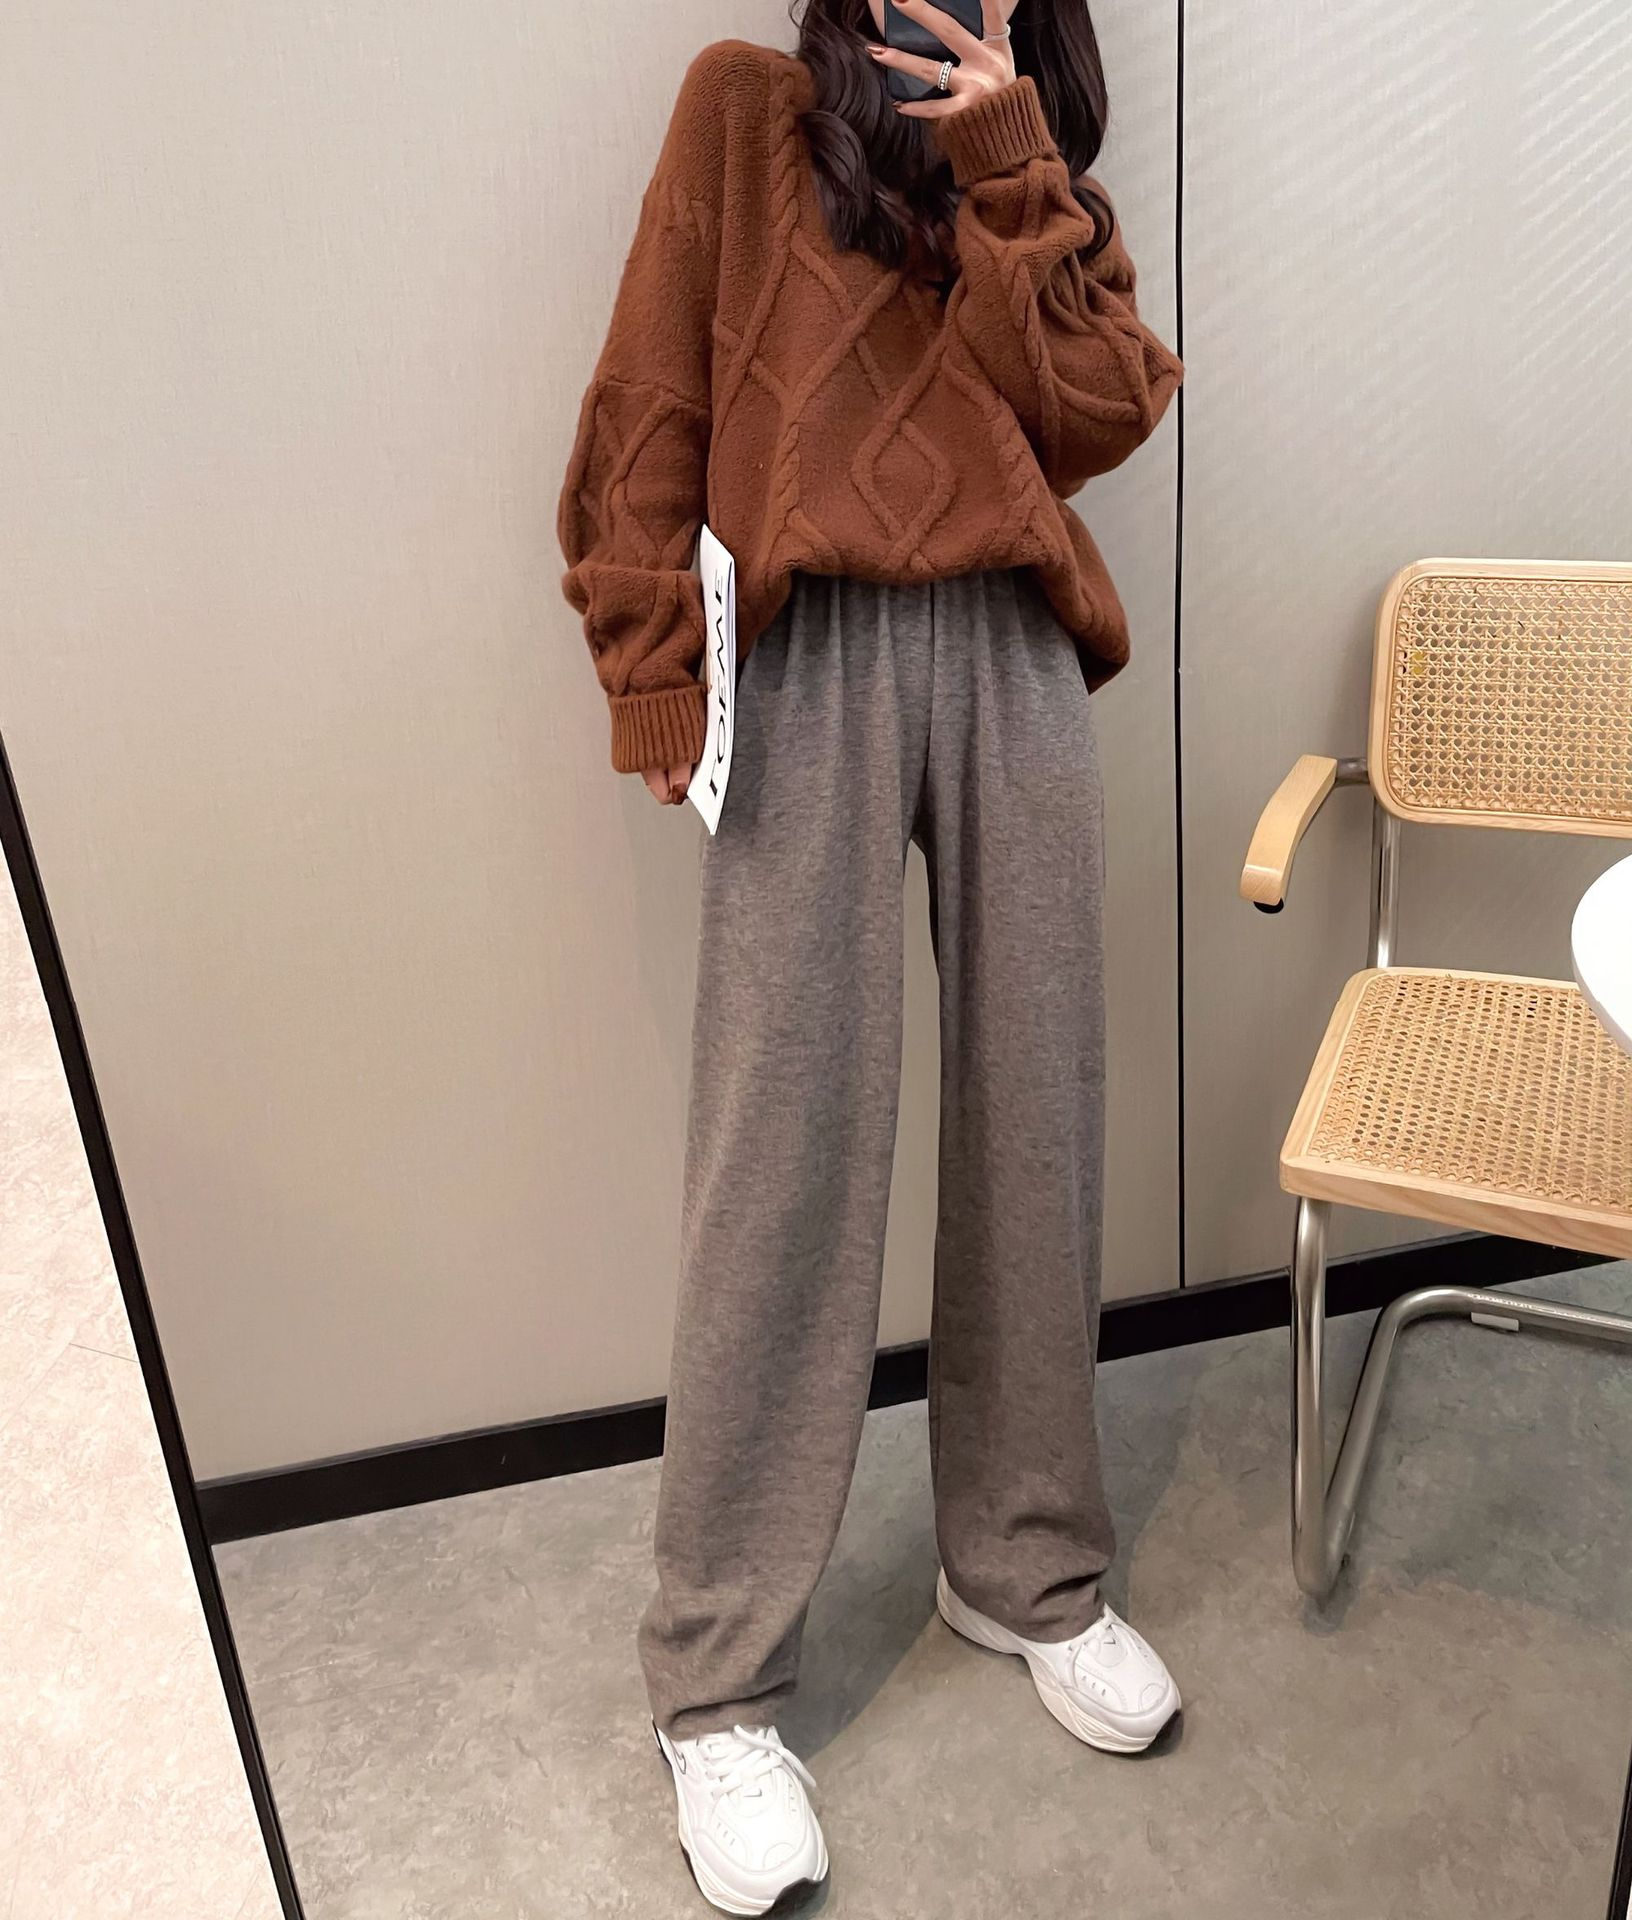 2021 autumn and winter knitted wide leg pants womens soft waxy cashmere like pants with high waist and thin drape